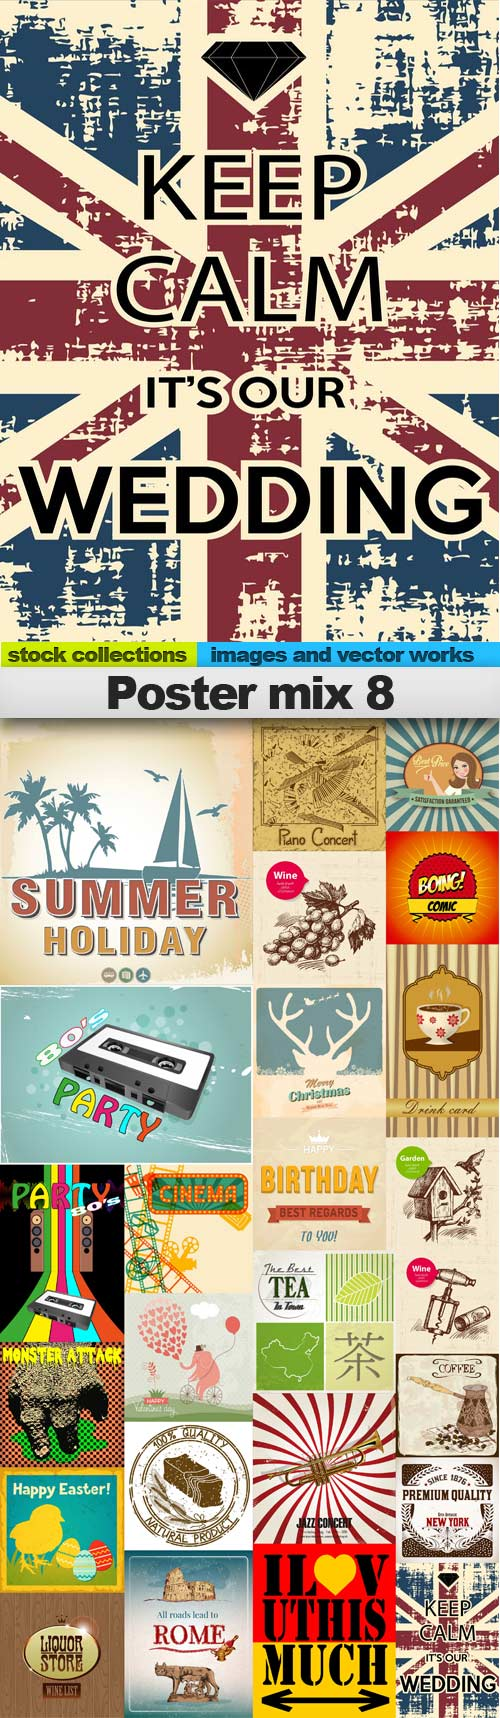 Poster mix 8,25 x EPS